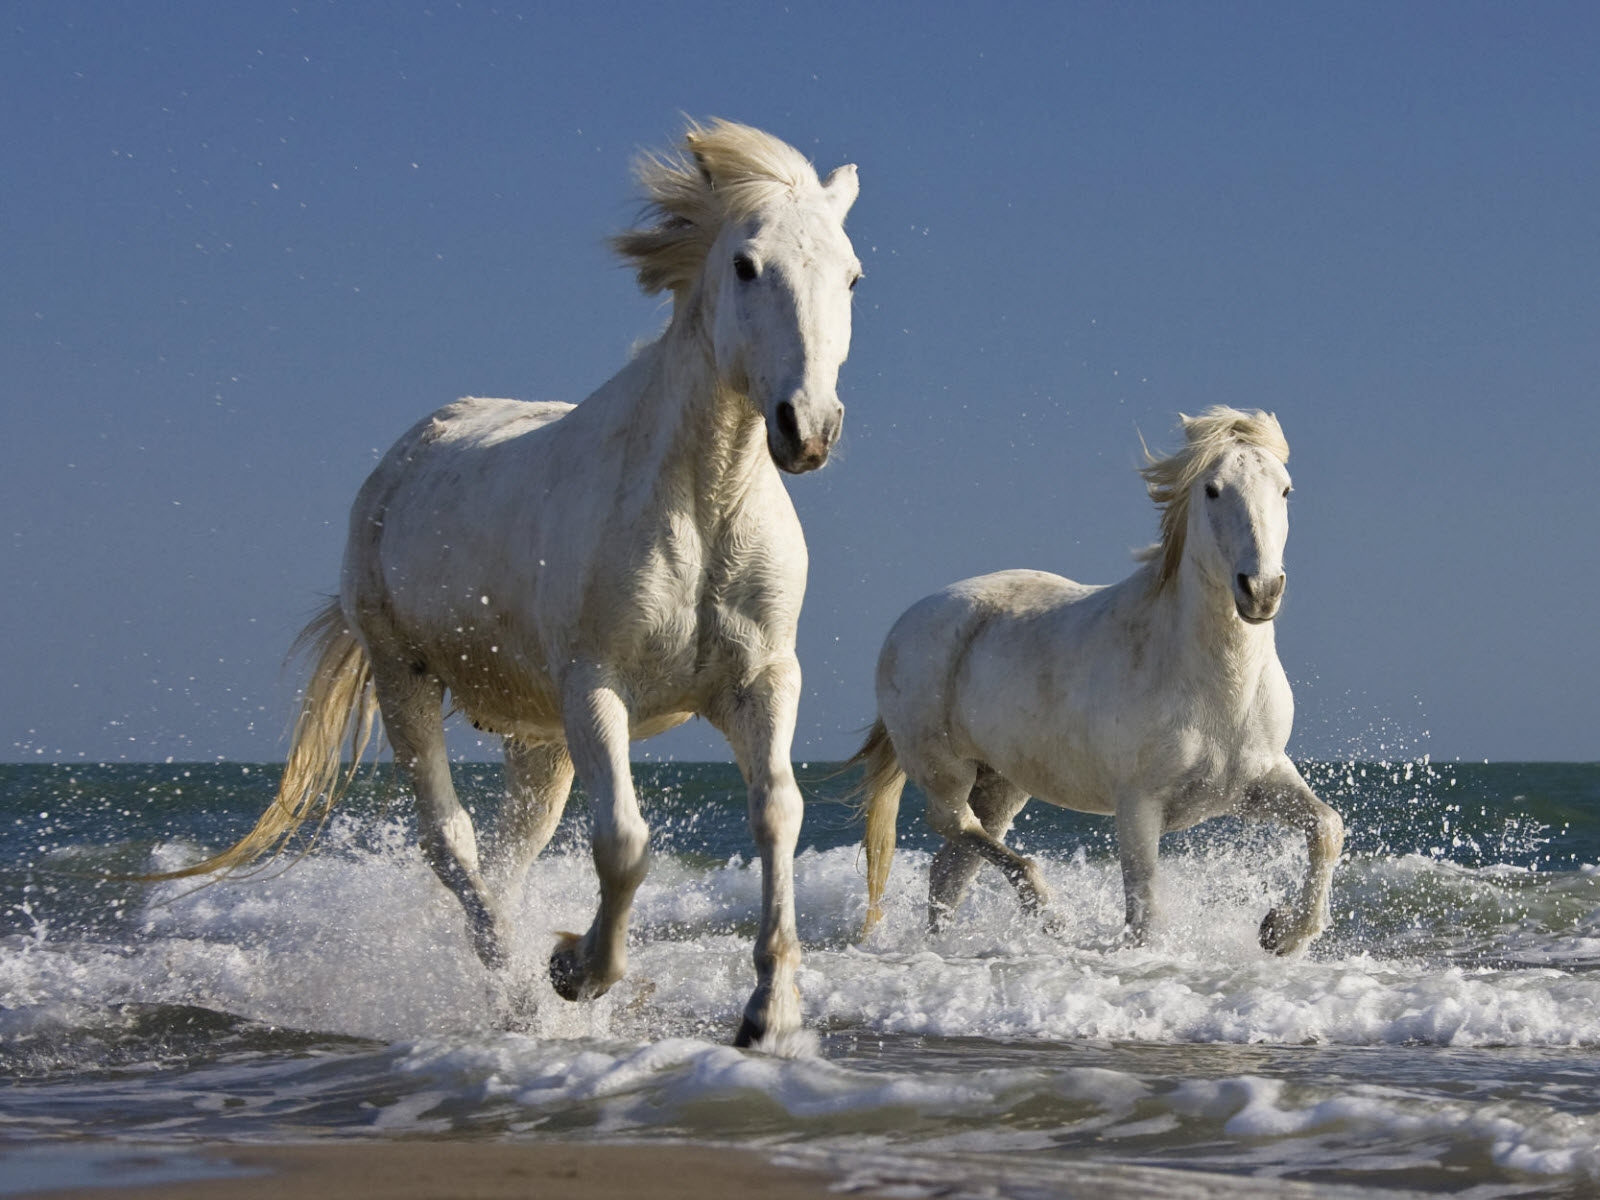 Galloping white horse - photo#21